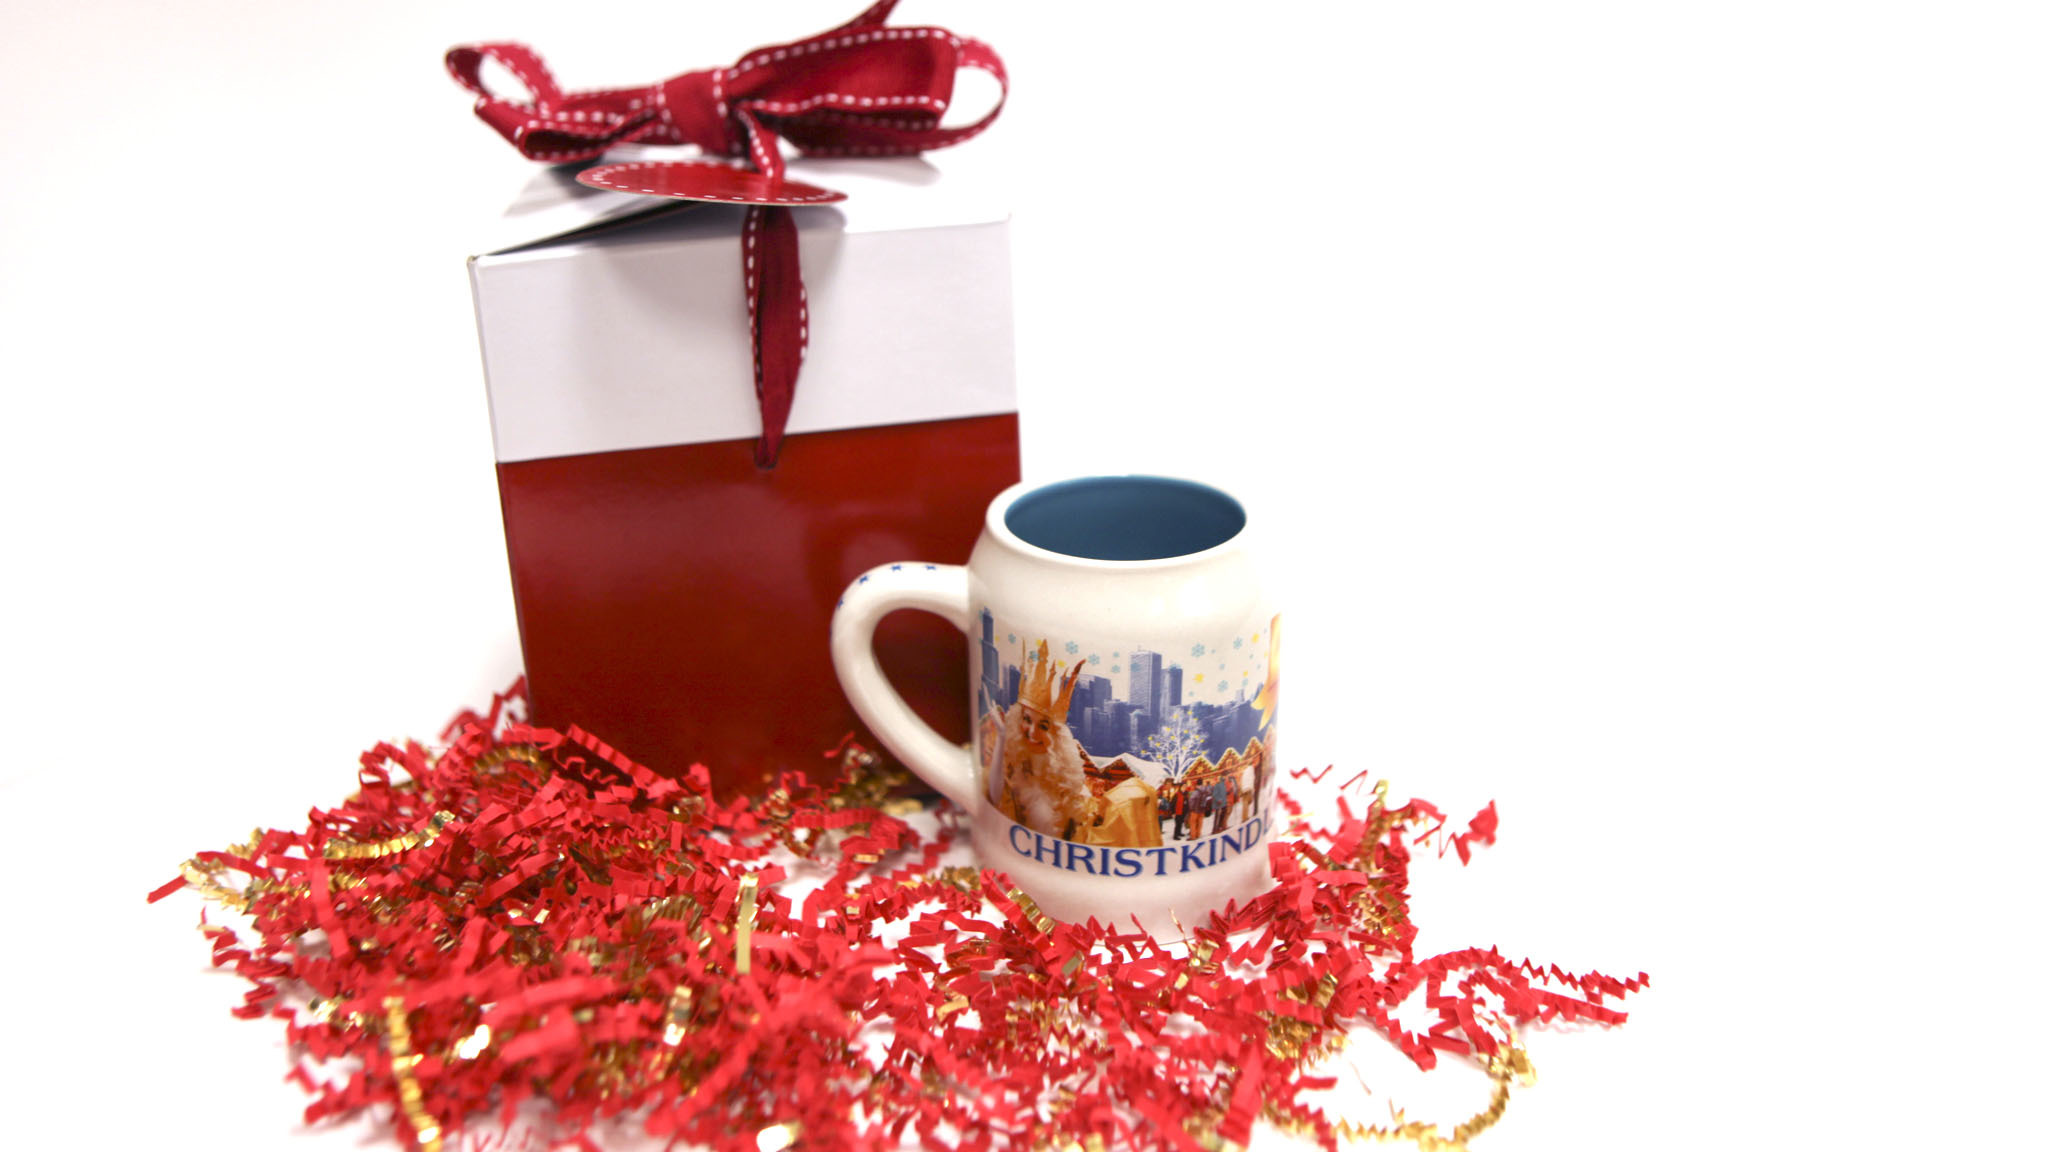 Christkindlmarket reveals its 2016 mug